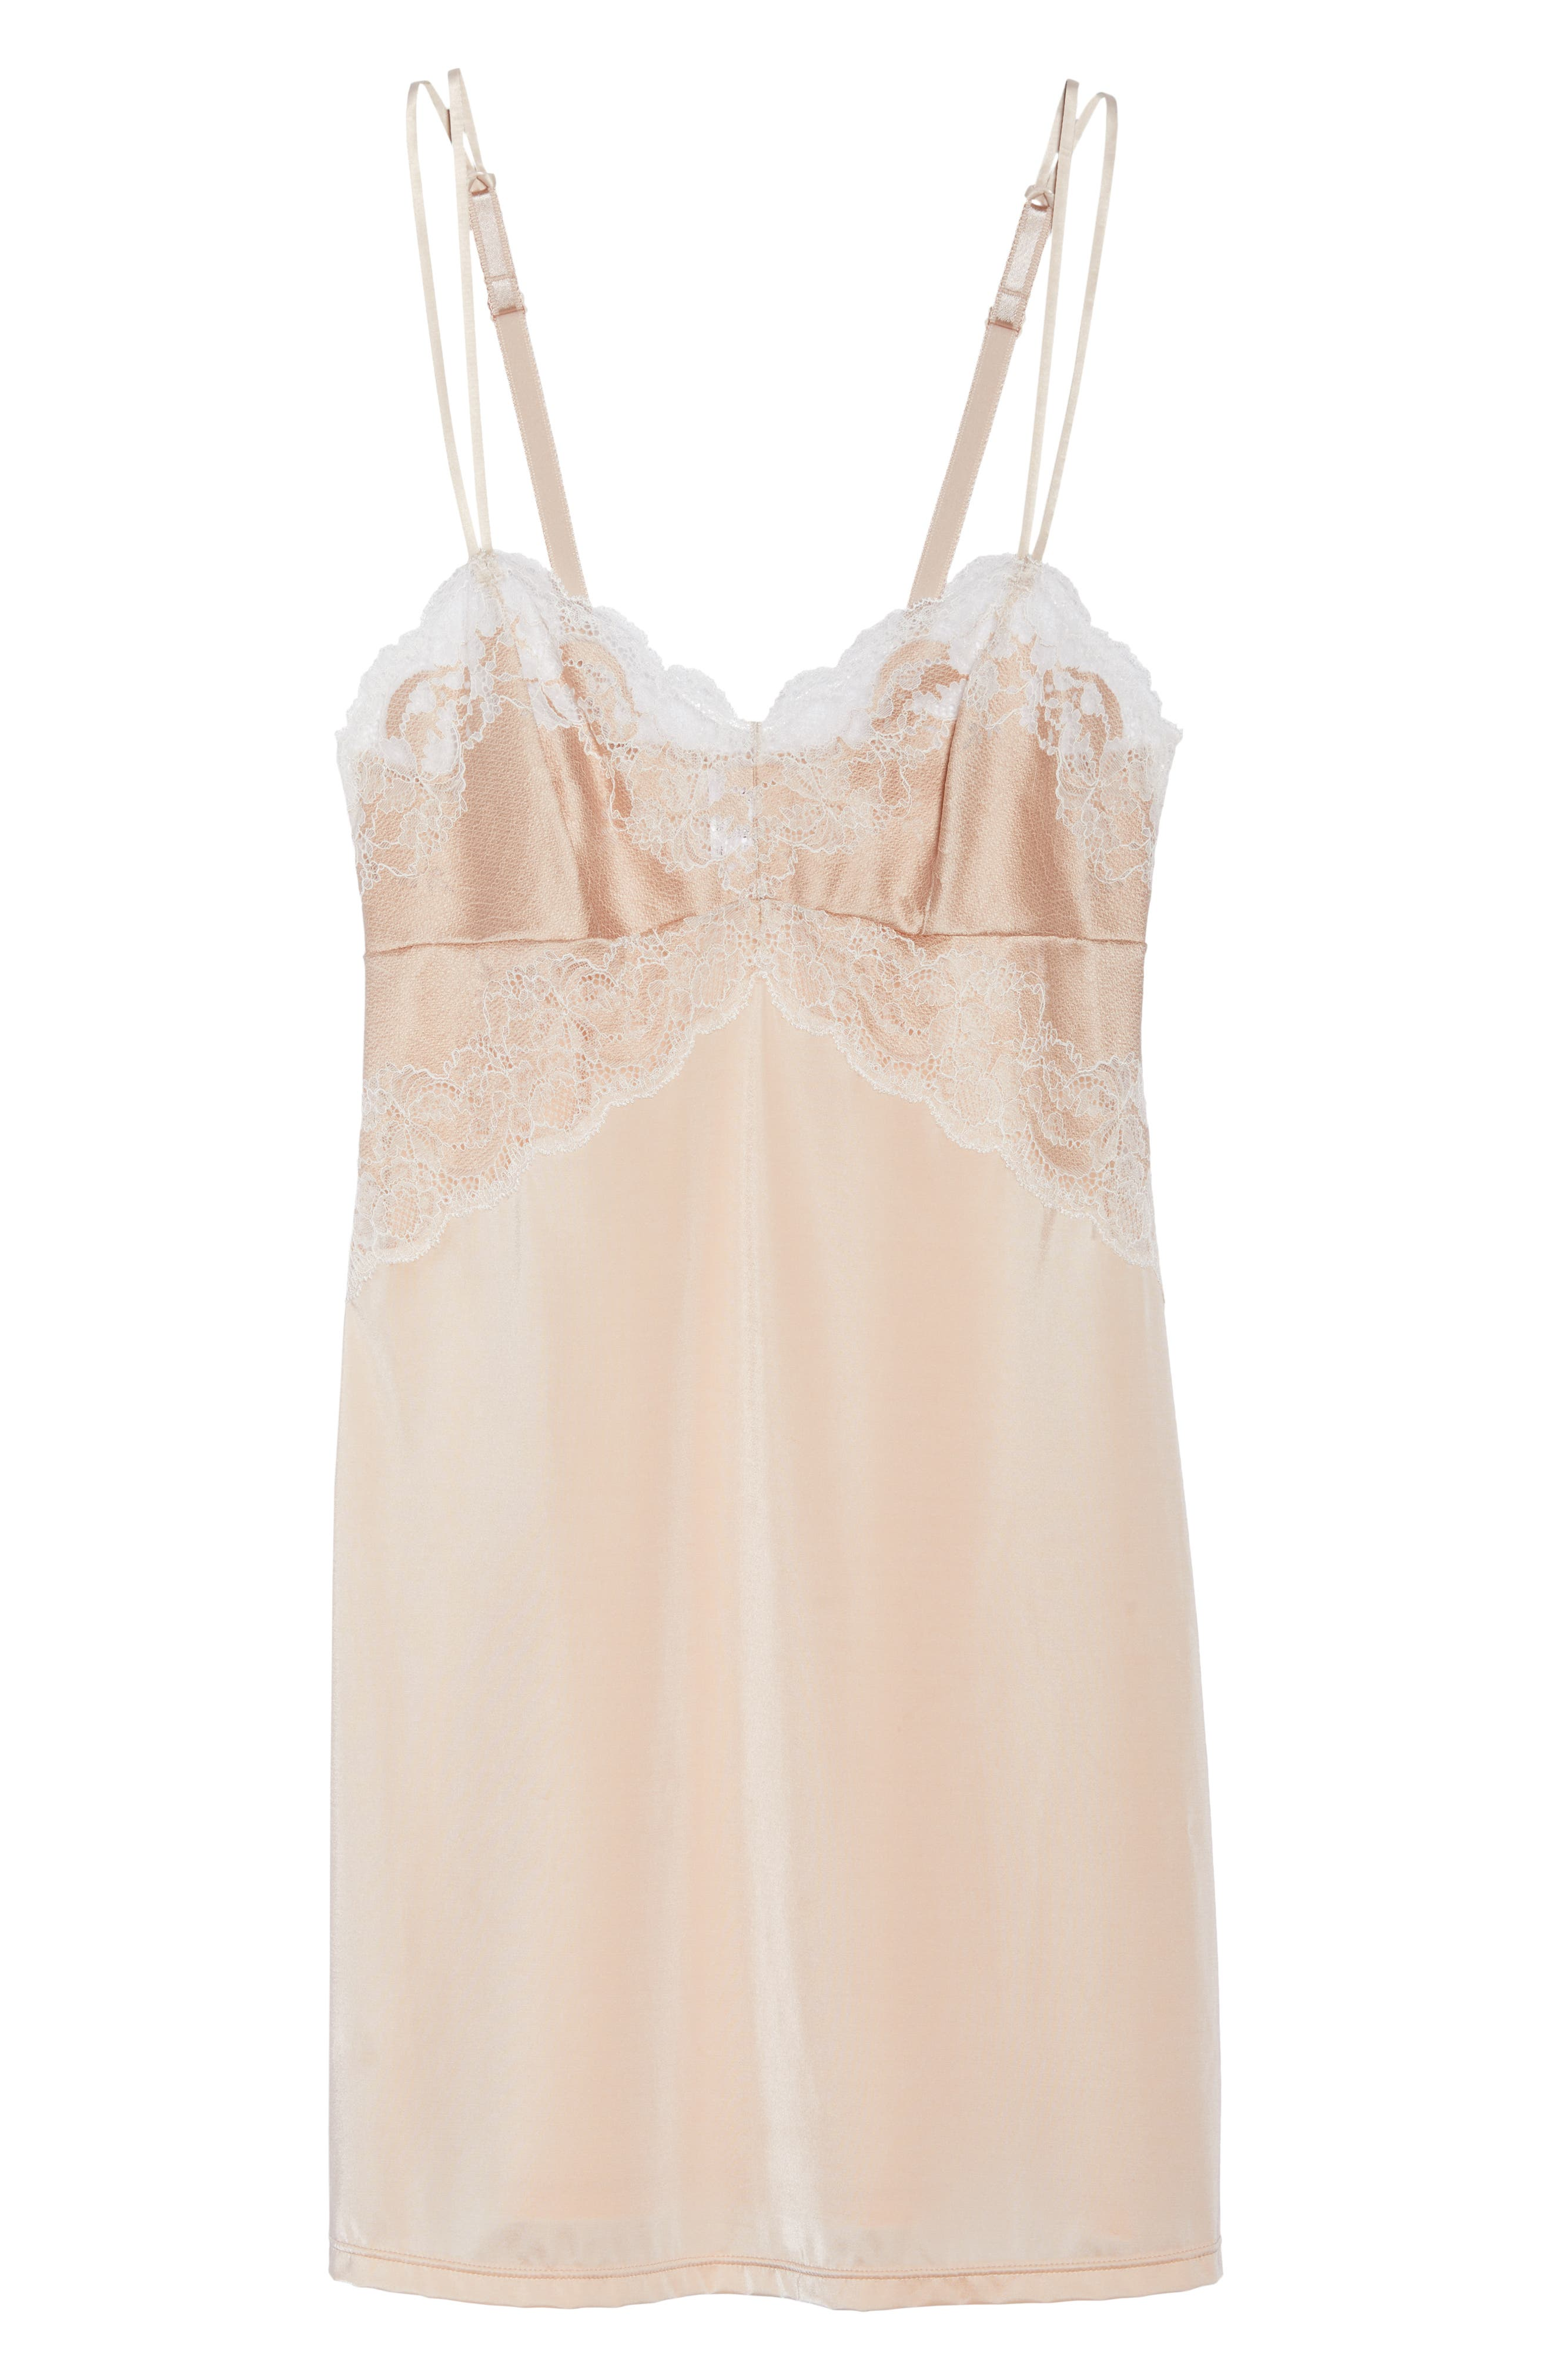 Lace Affair Chemise,                             Alternate thumbnail 4, color,                             Rose Dust/ Angel Wing